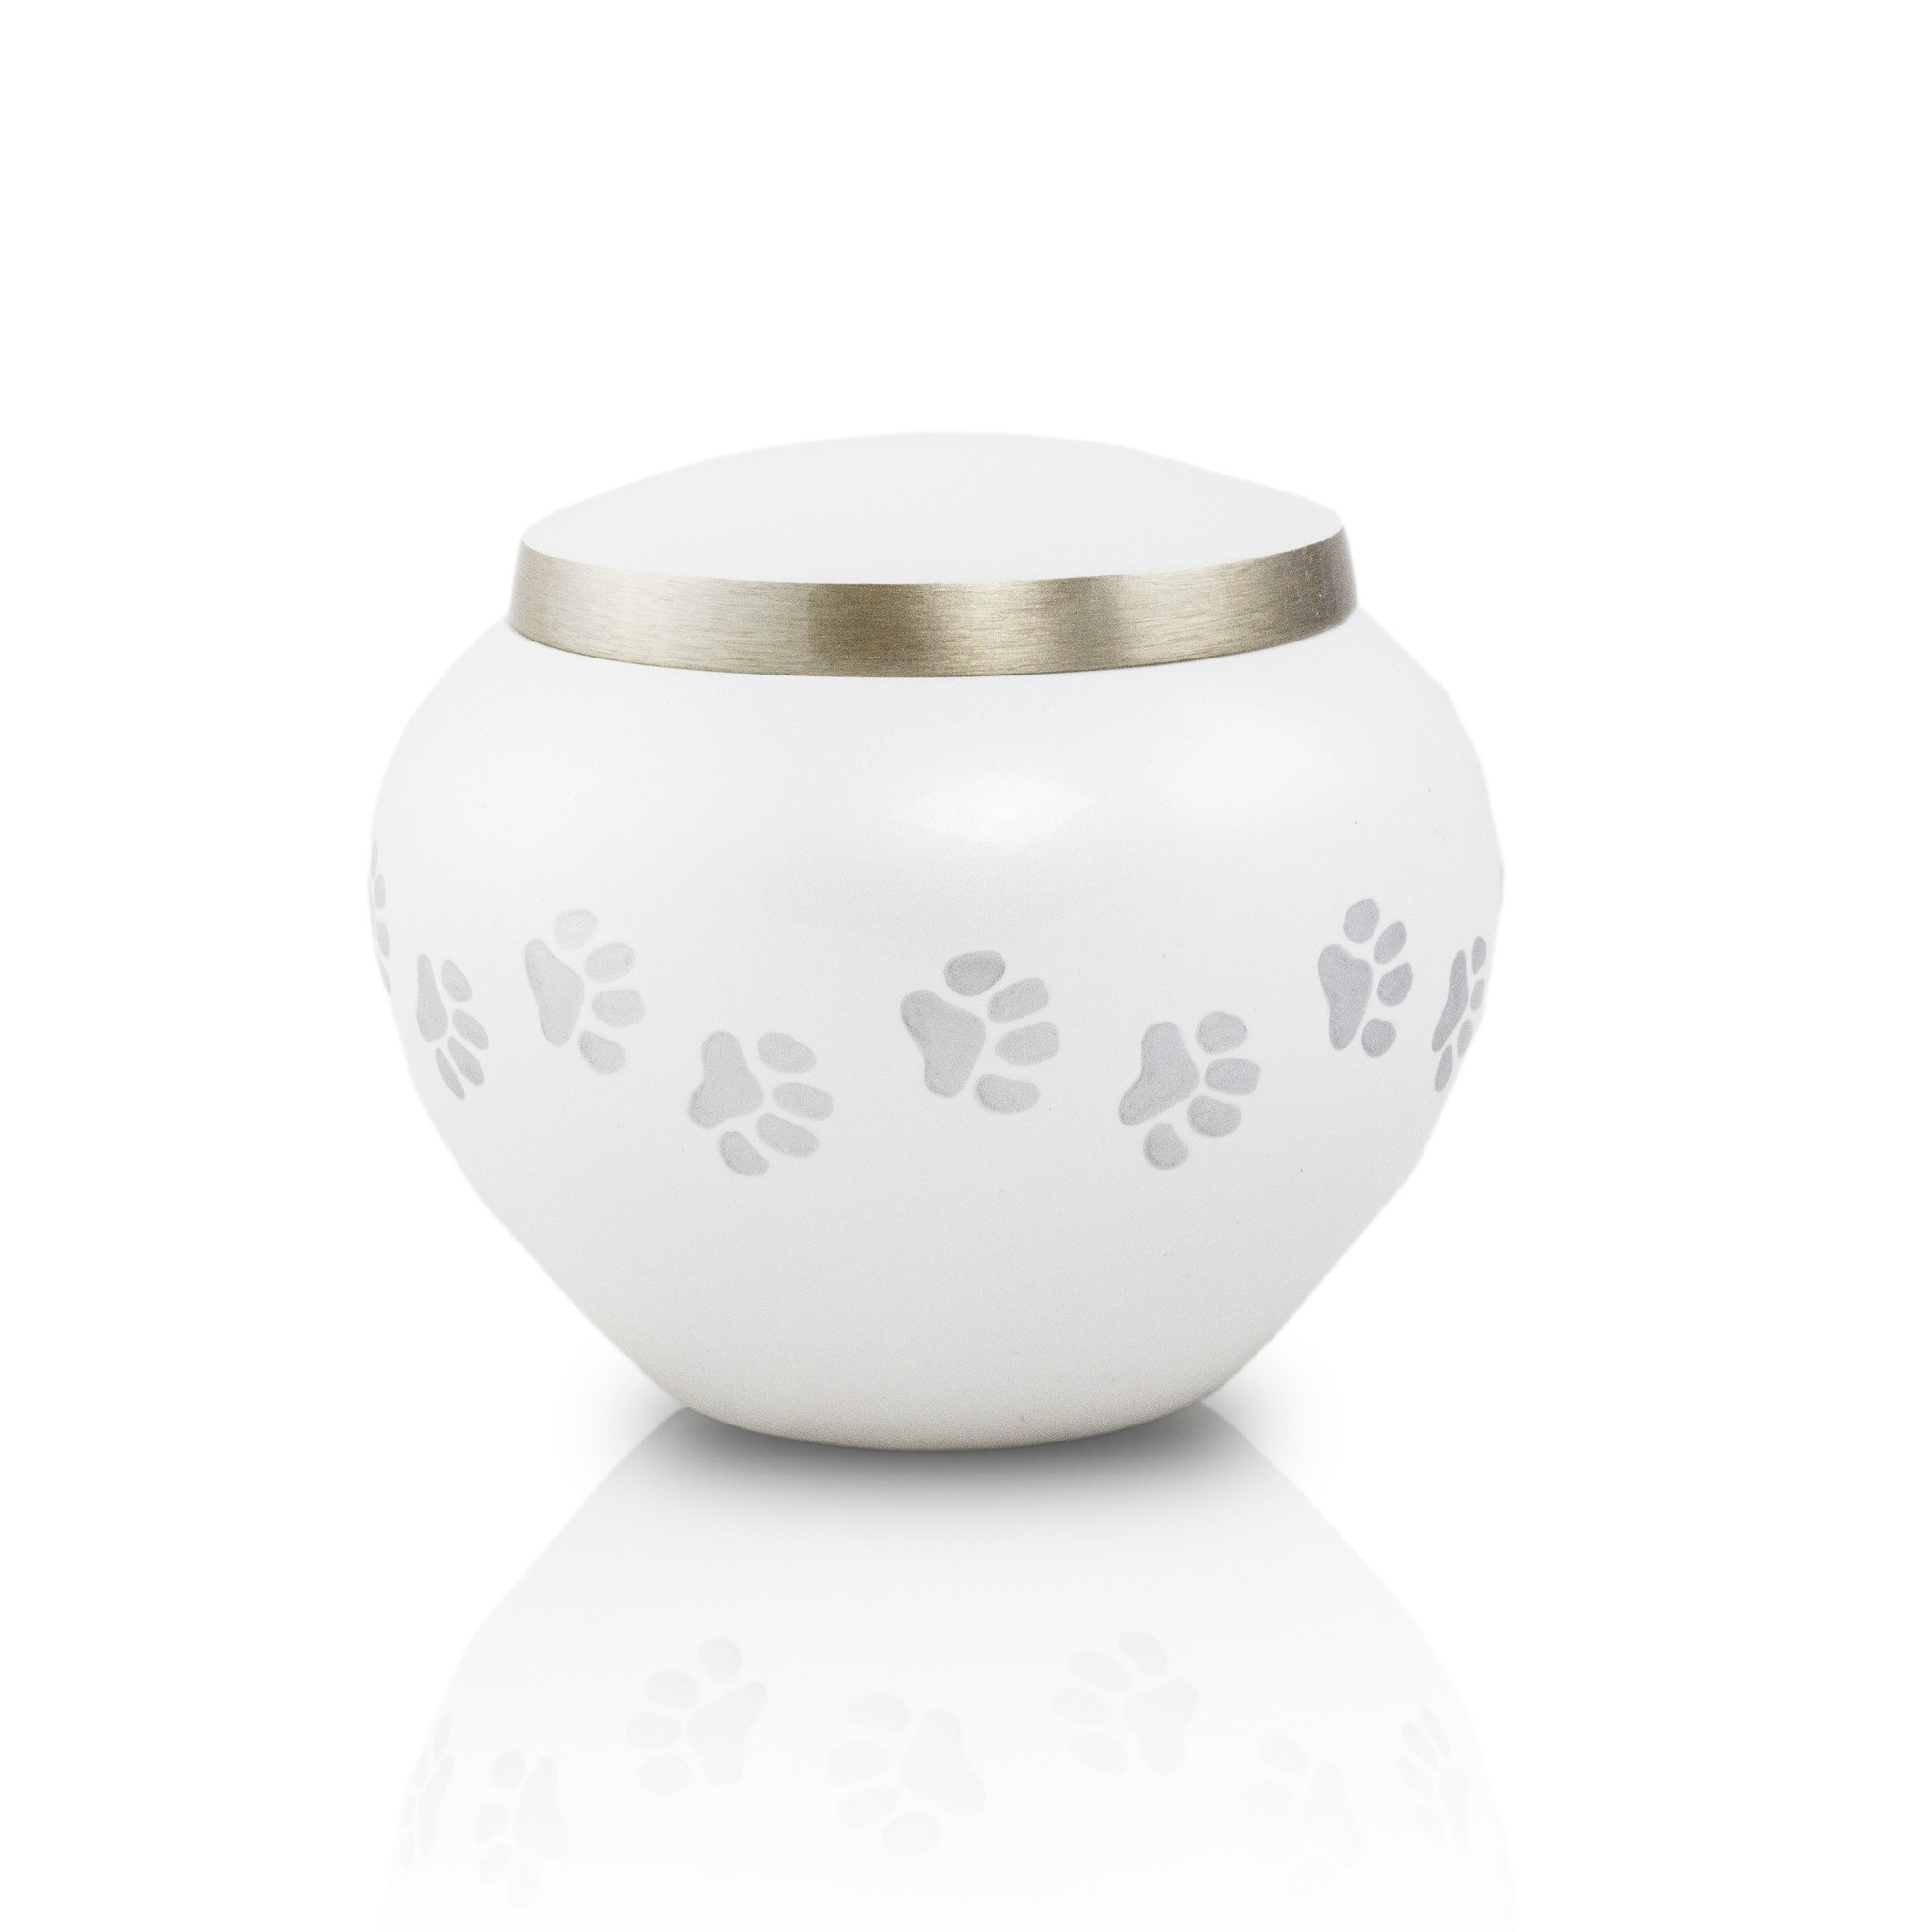 Paw Prints Bronze Memorial Urn for Cats and Dogs - Extra Small - Holds Up to 25 Cubic Inches of Ashes - Pearl White Pet Cremation Urn for Ashes - Engraving Sold Separately